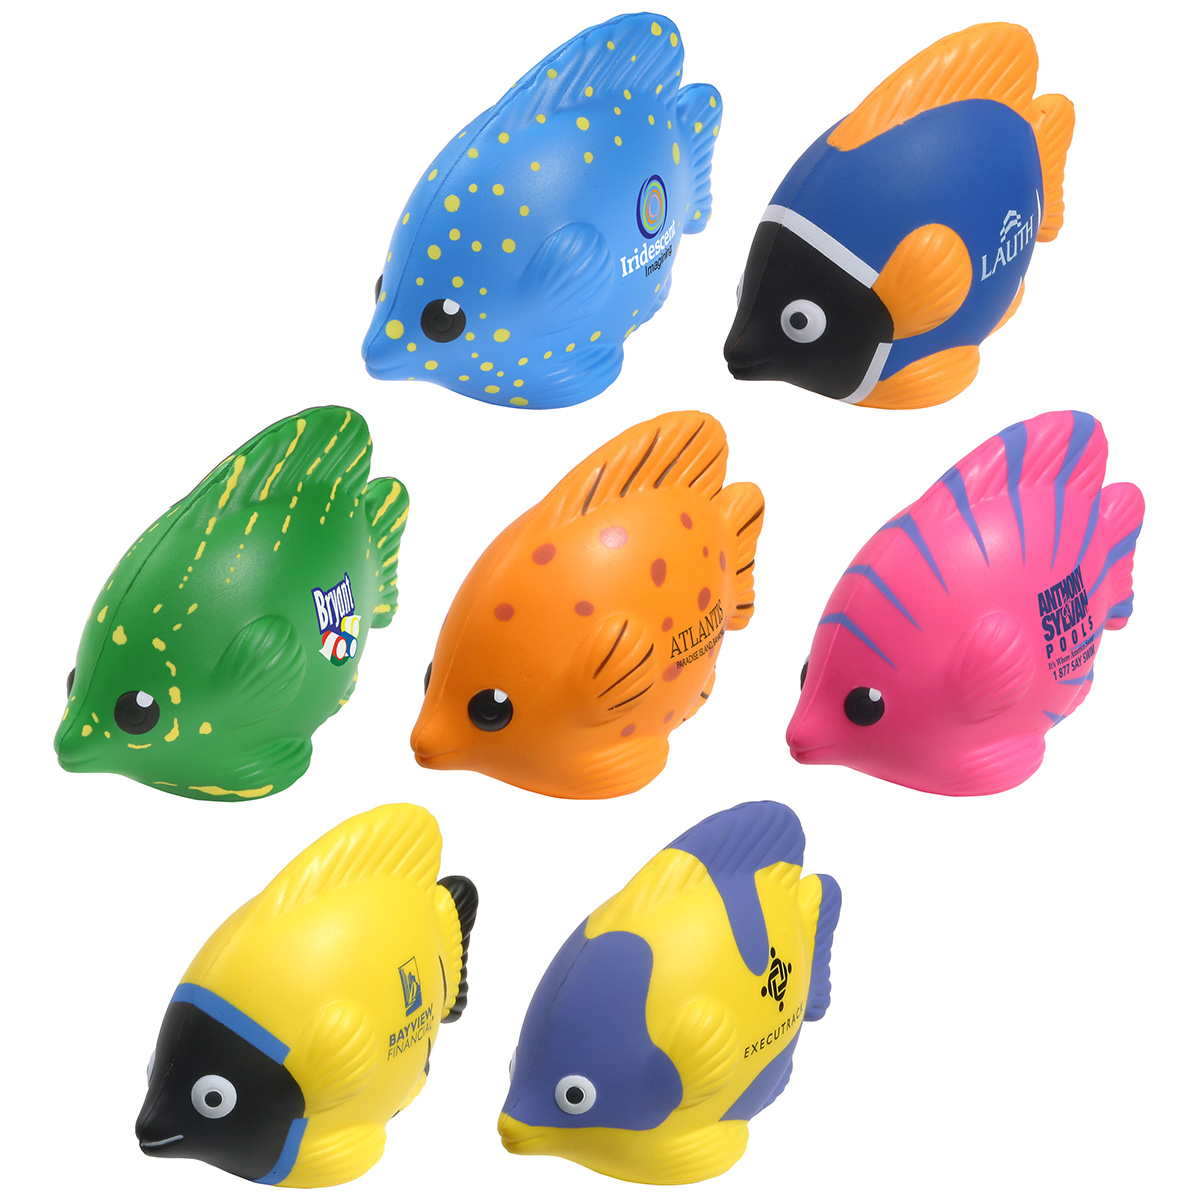 Tropical Fish Stress Reliever, LAA-TF09, 1 Colour Imprint